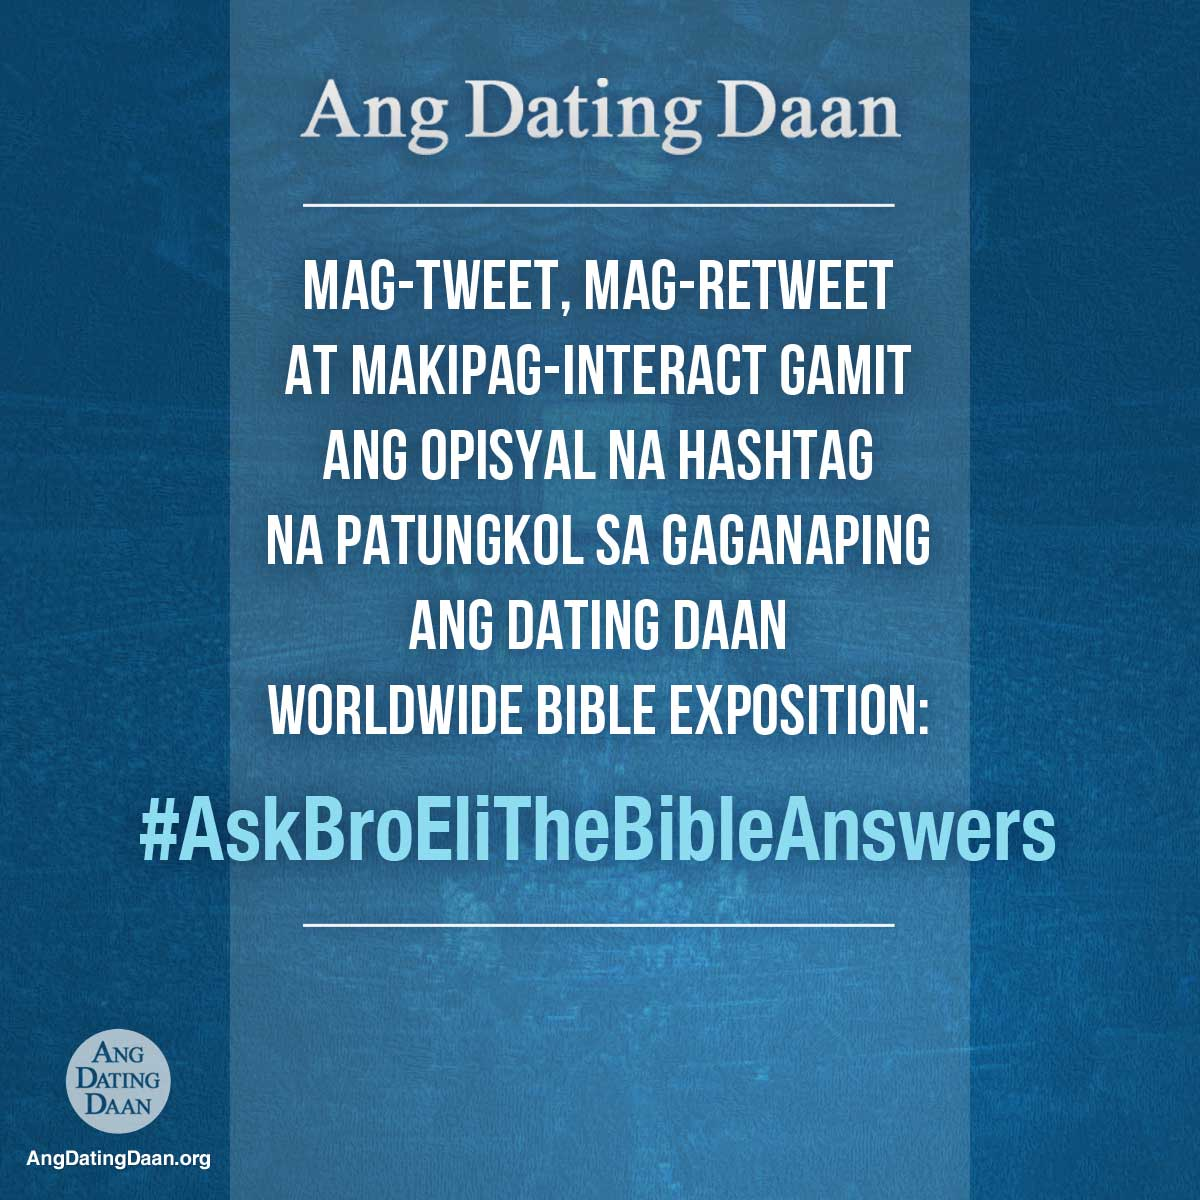 ang dating daan official website Asop music festival year 5 grand finalists explain the real story behind their song entries ang dating daan's official site ang dating daan's.